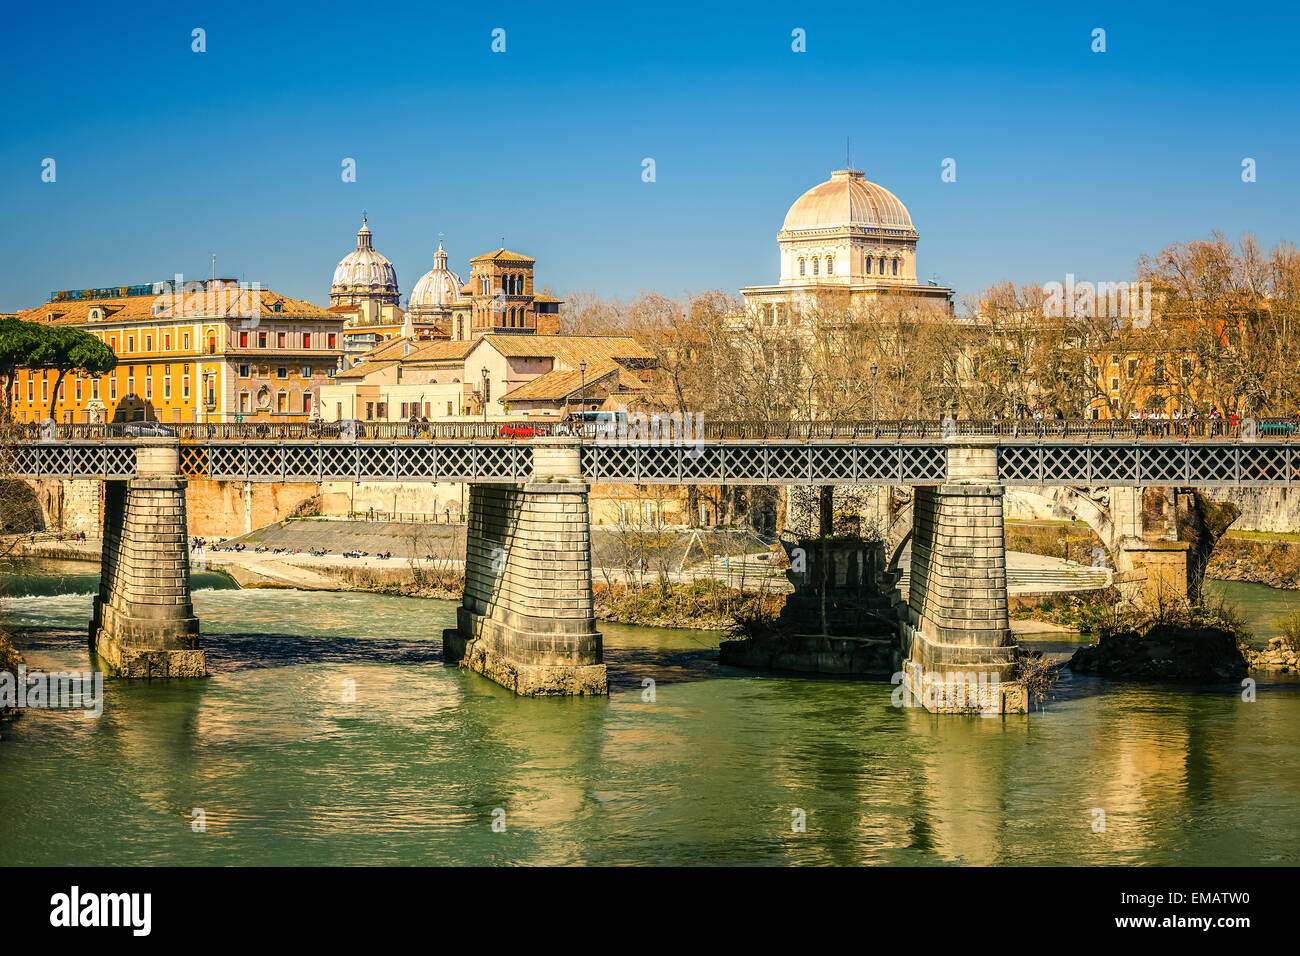 Tiber river in Rome, Italy - Stock Image